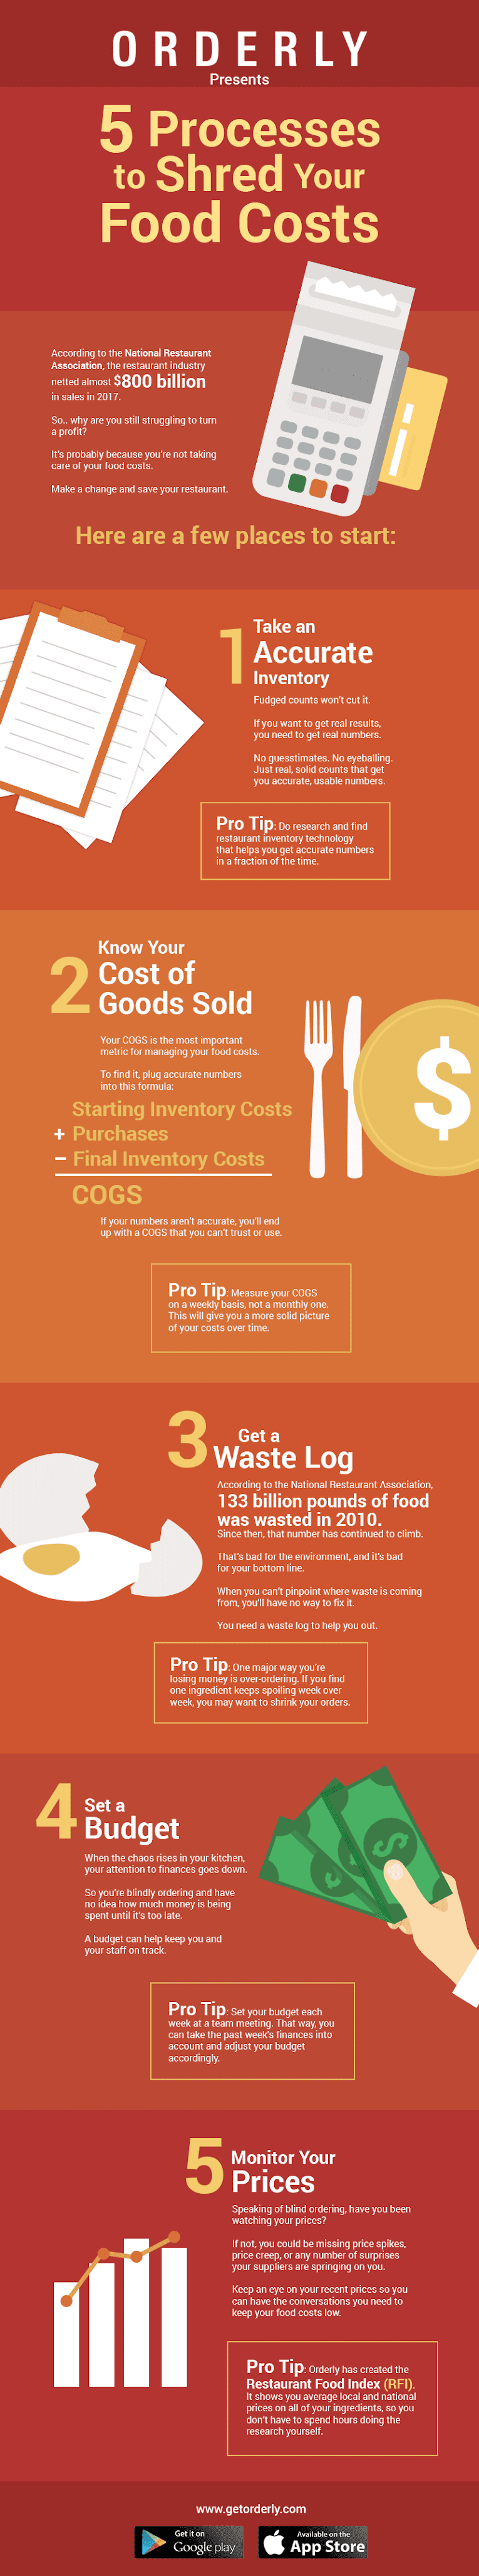 5 Processes To Shred Your Food Costs #infographic